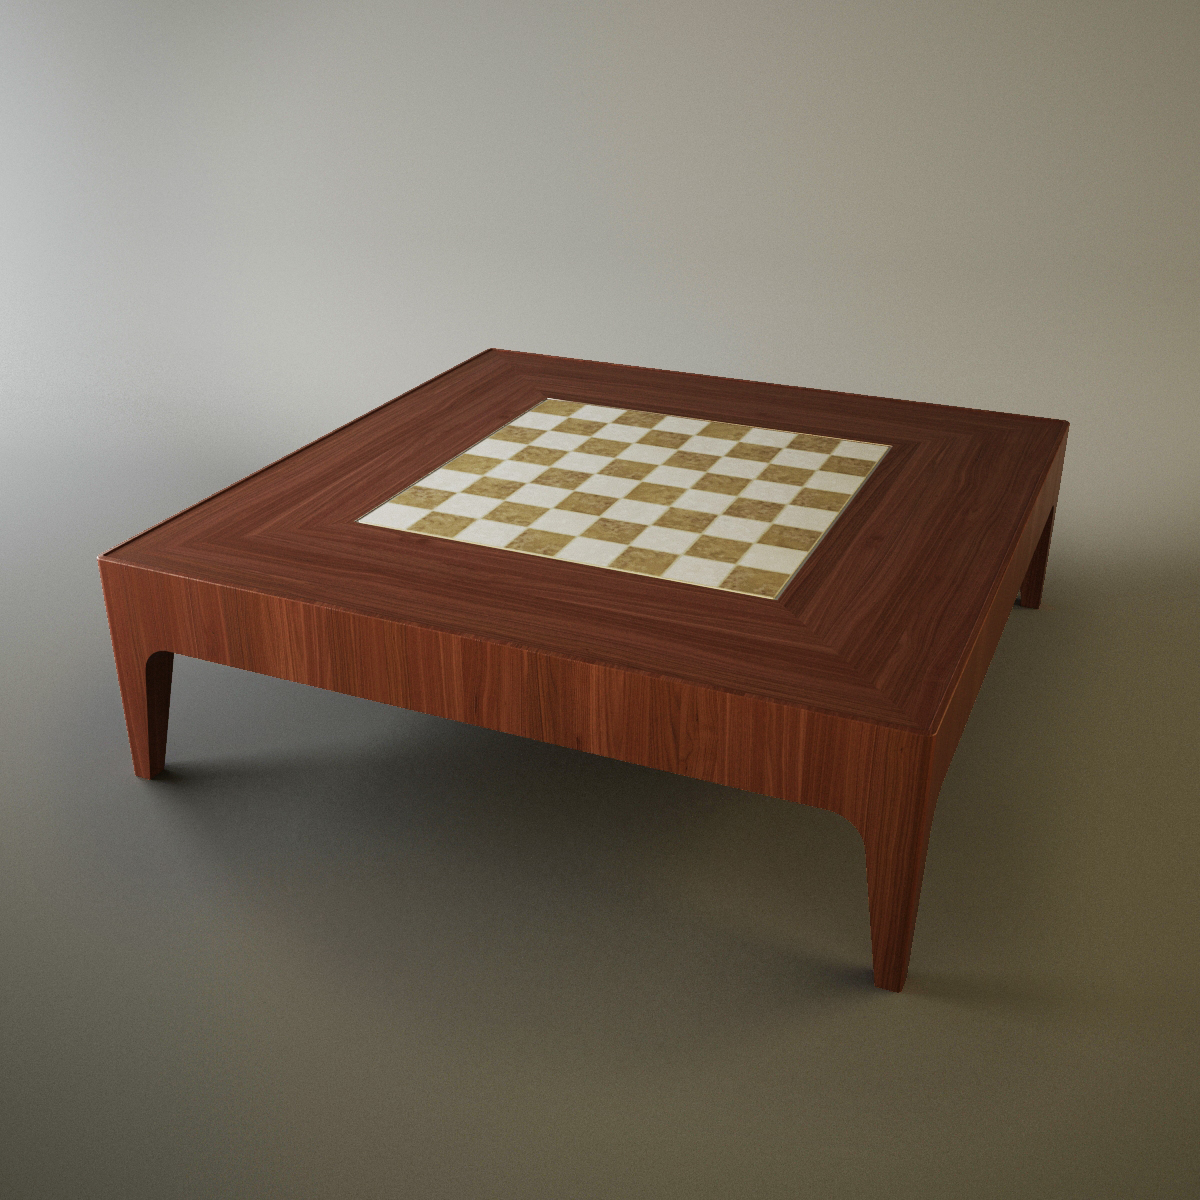 Cool Chess Coffee Table Gmtry Best Dining Table And Chair Ideas Images Gmtryco